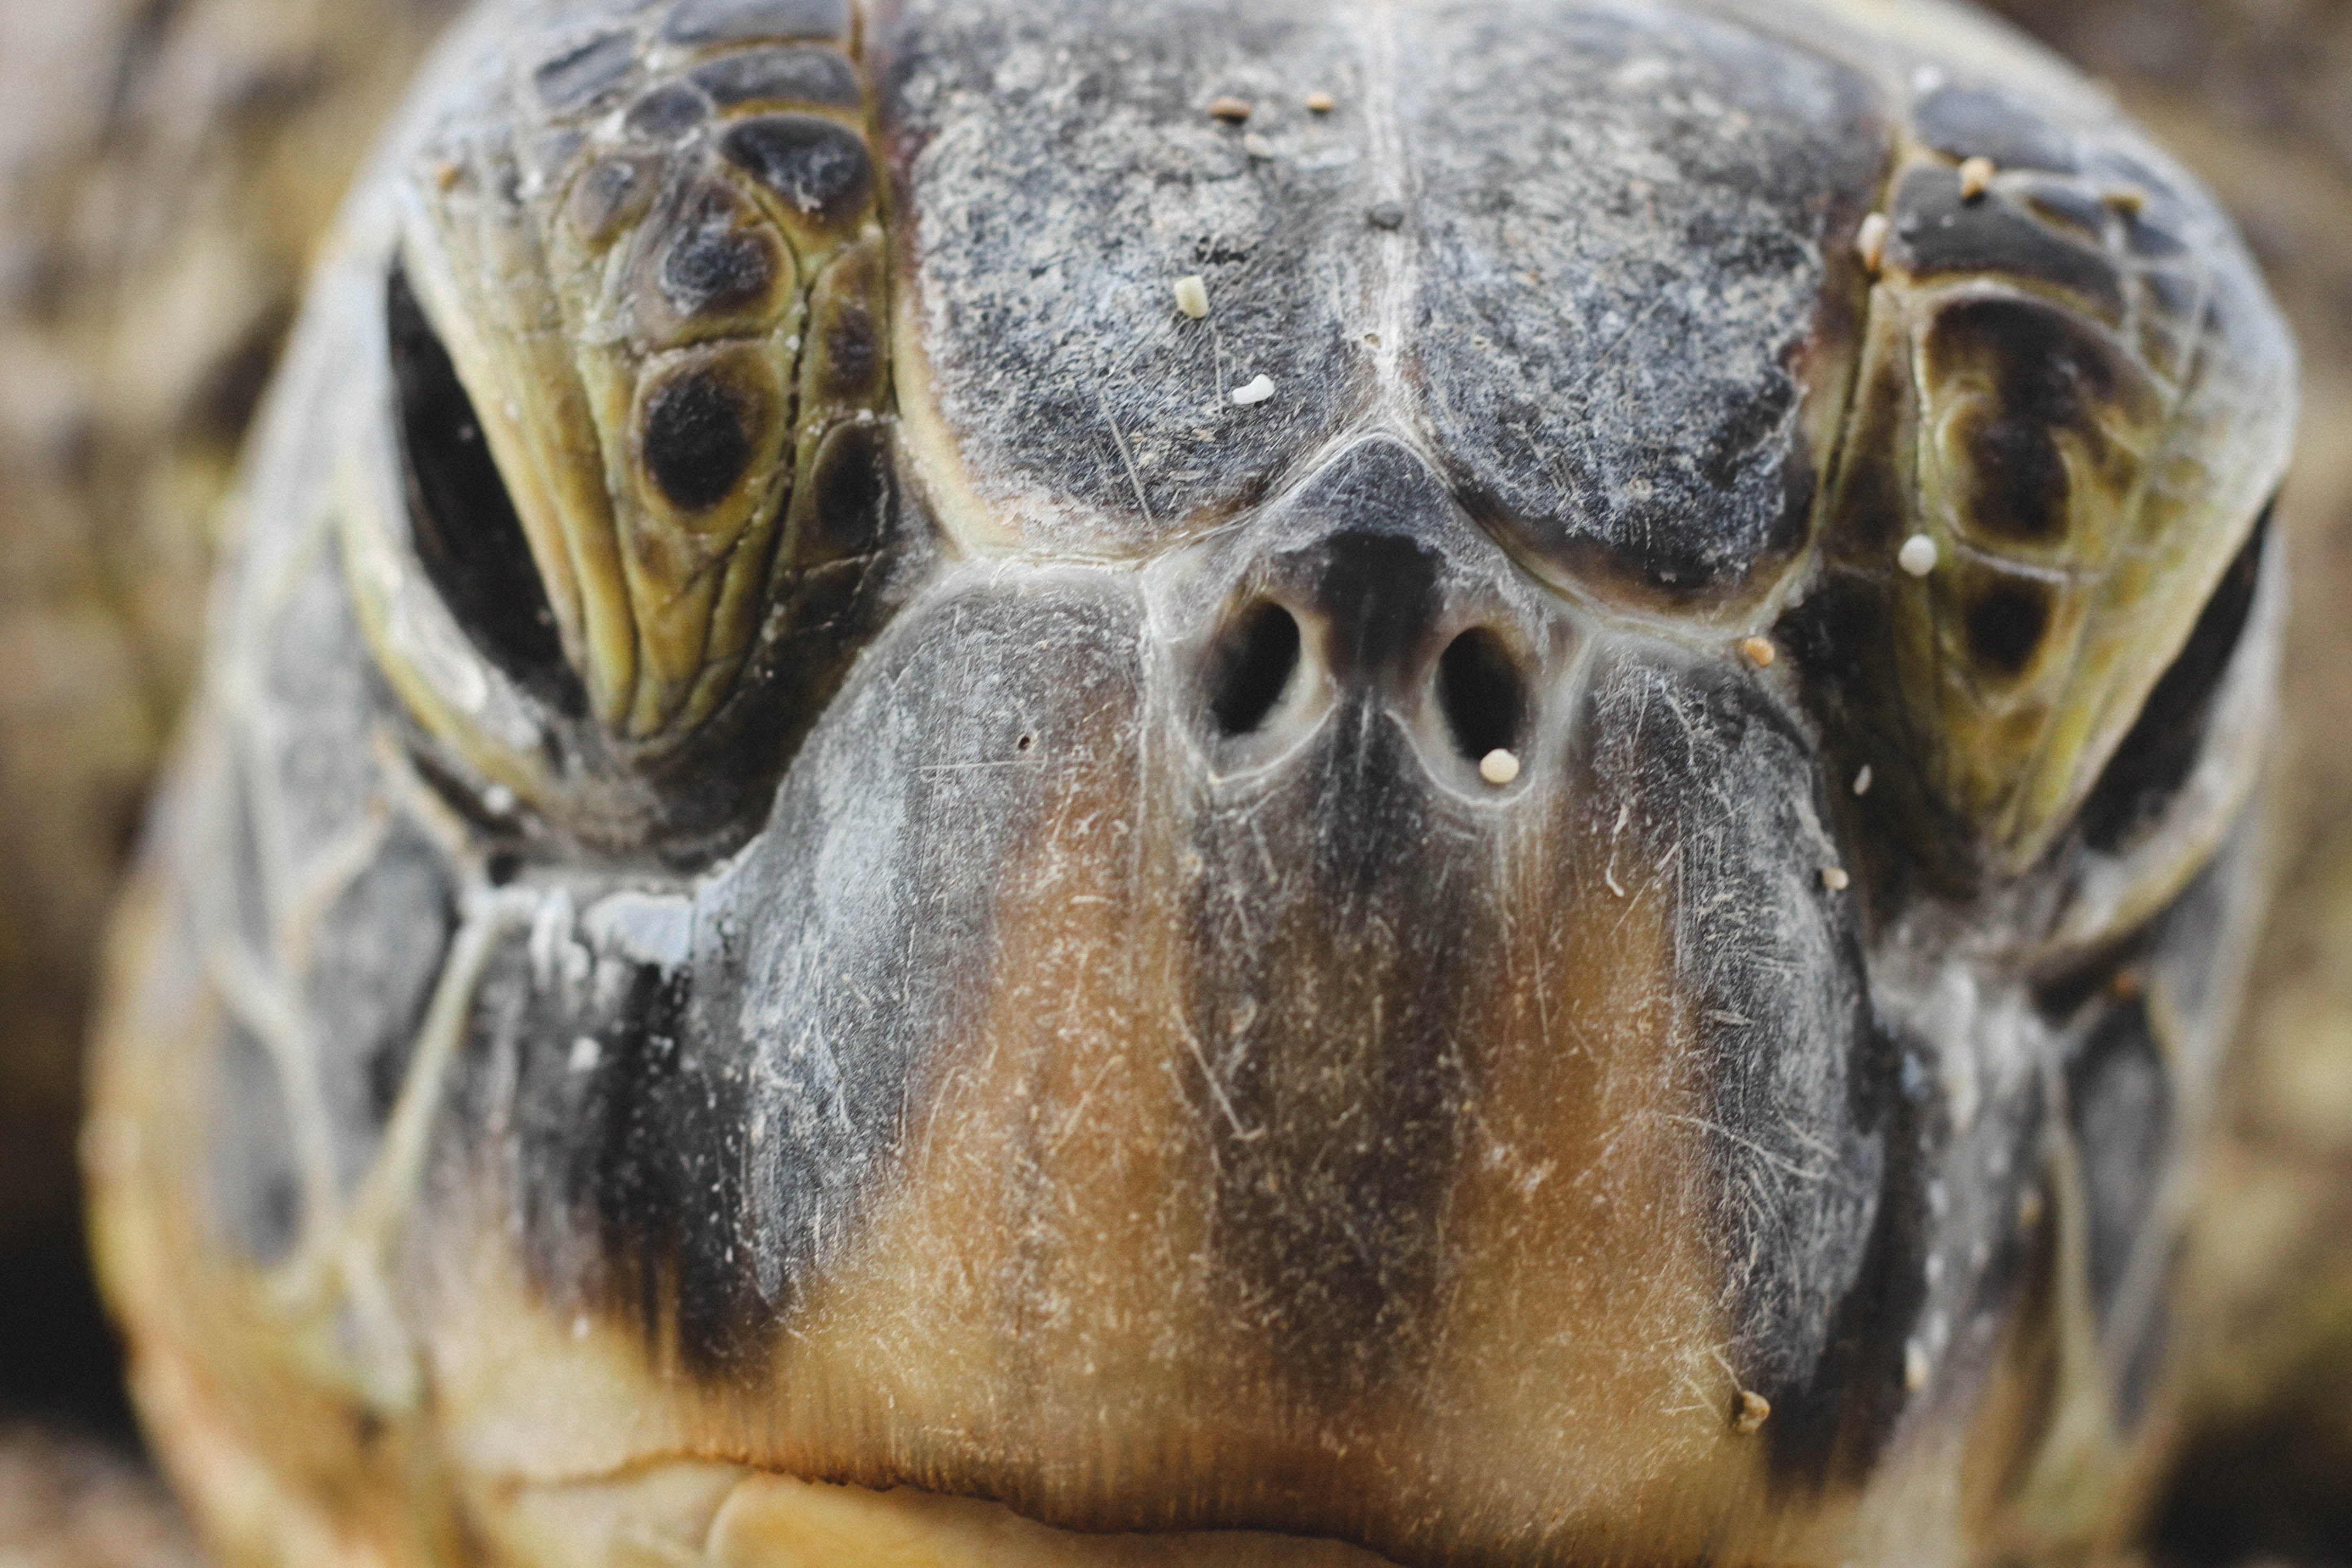 Closeup of an old turtle face